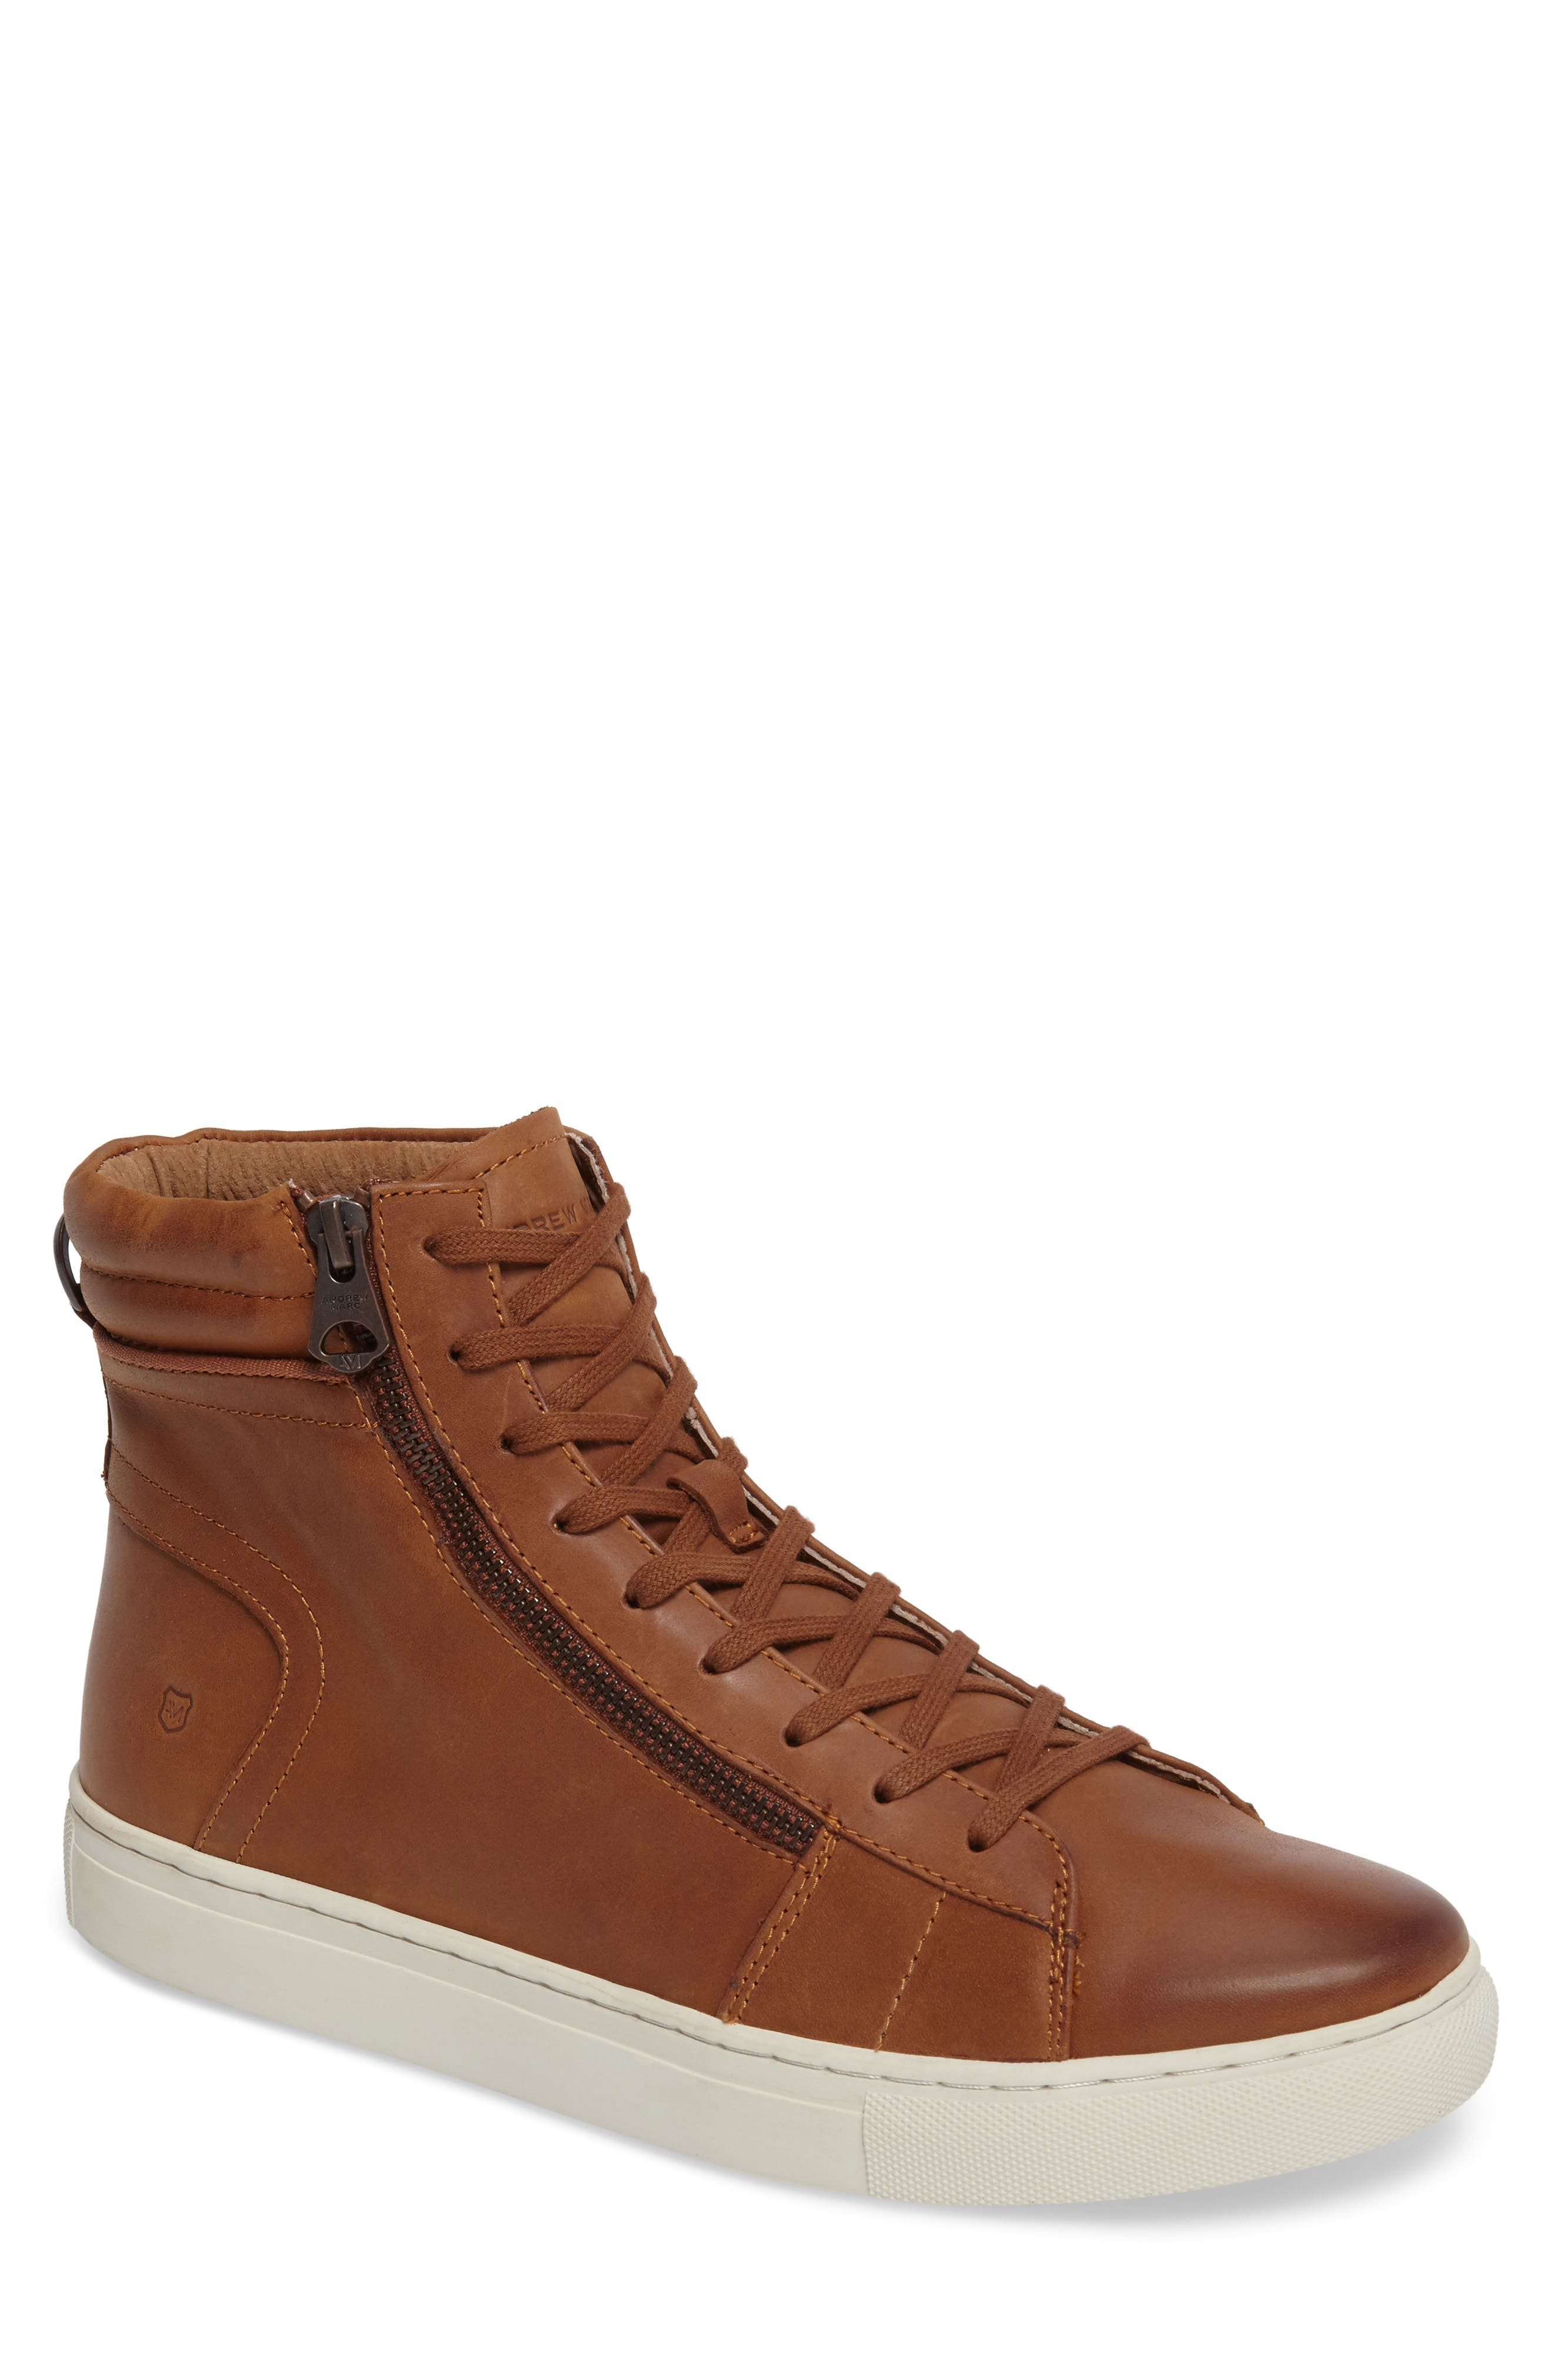 Remsen Sneaker,                         Main,                         color, Whiskey/ Snow White Leather